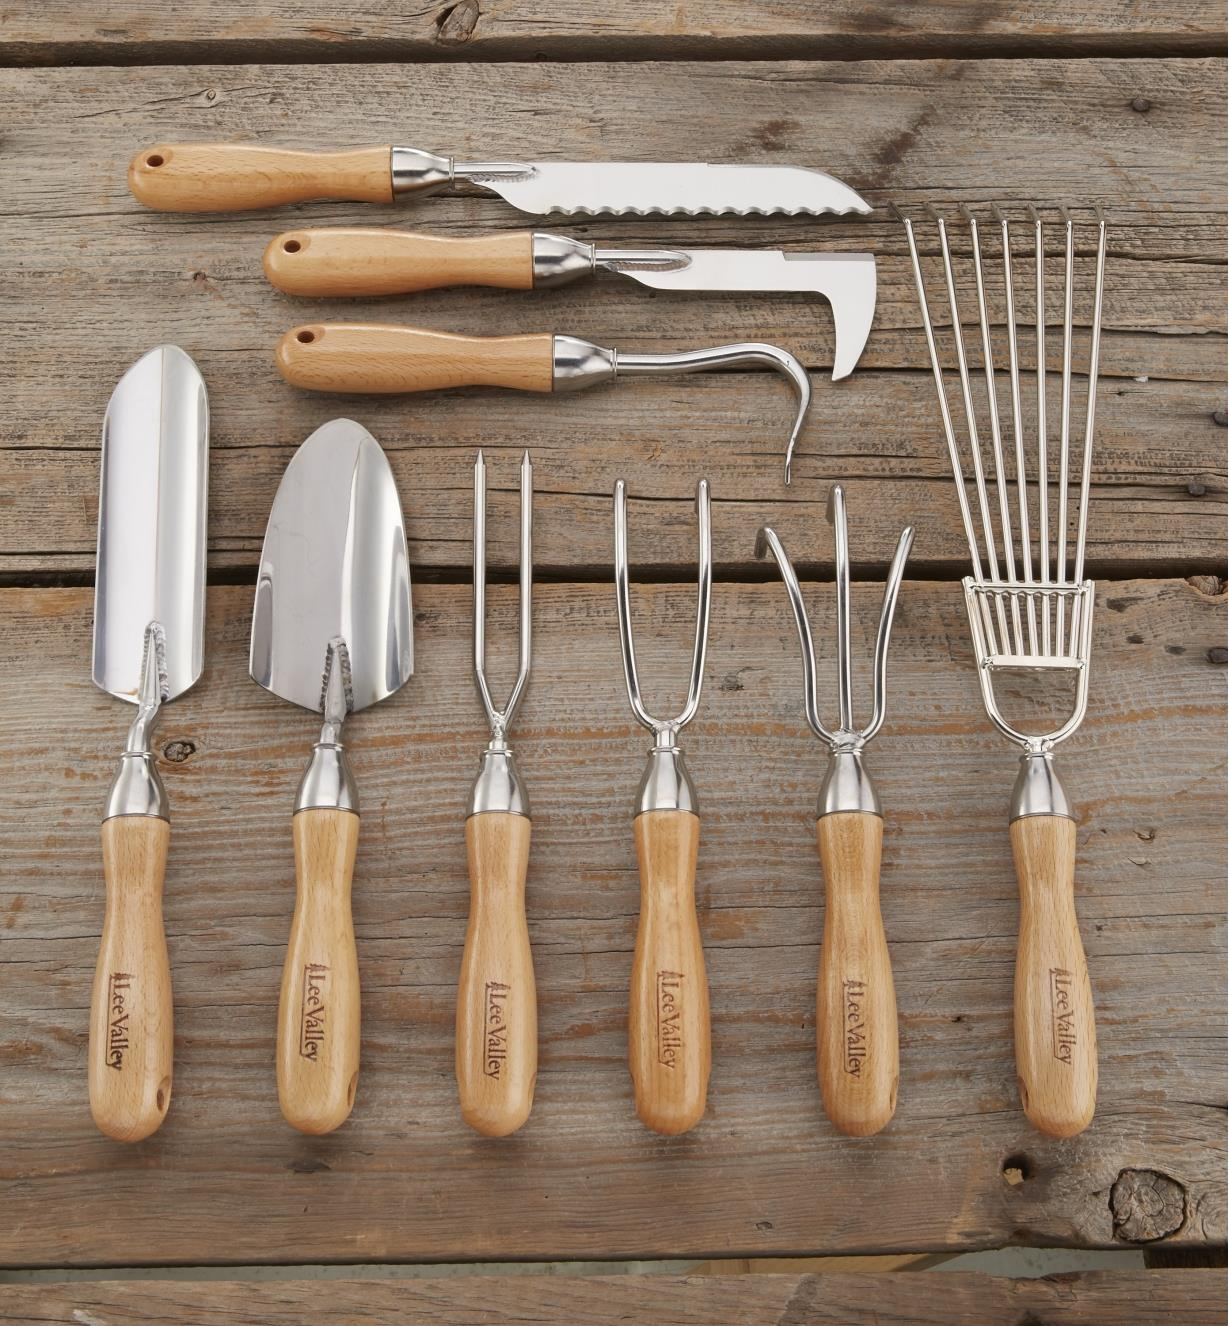 AB634 - Set of 9 Lee Valley Garden Tools